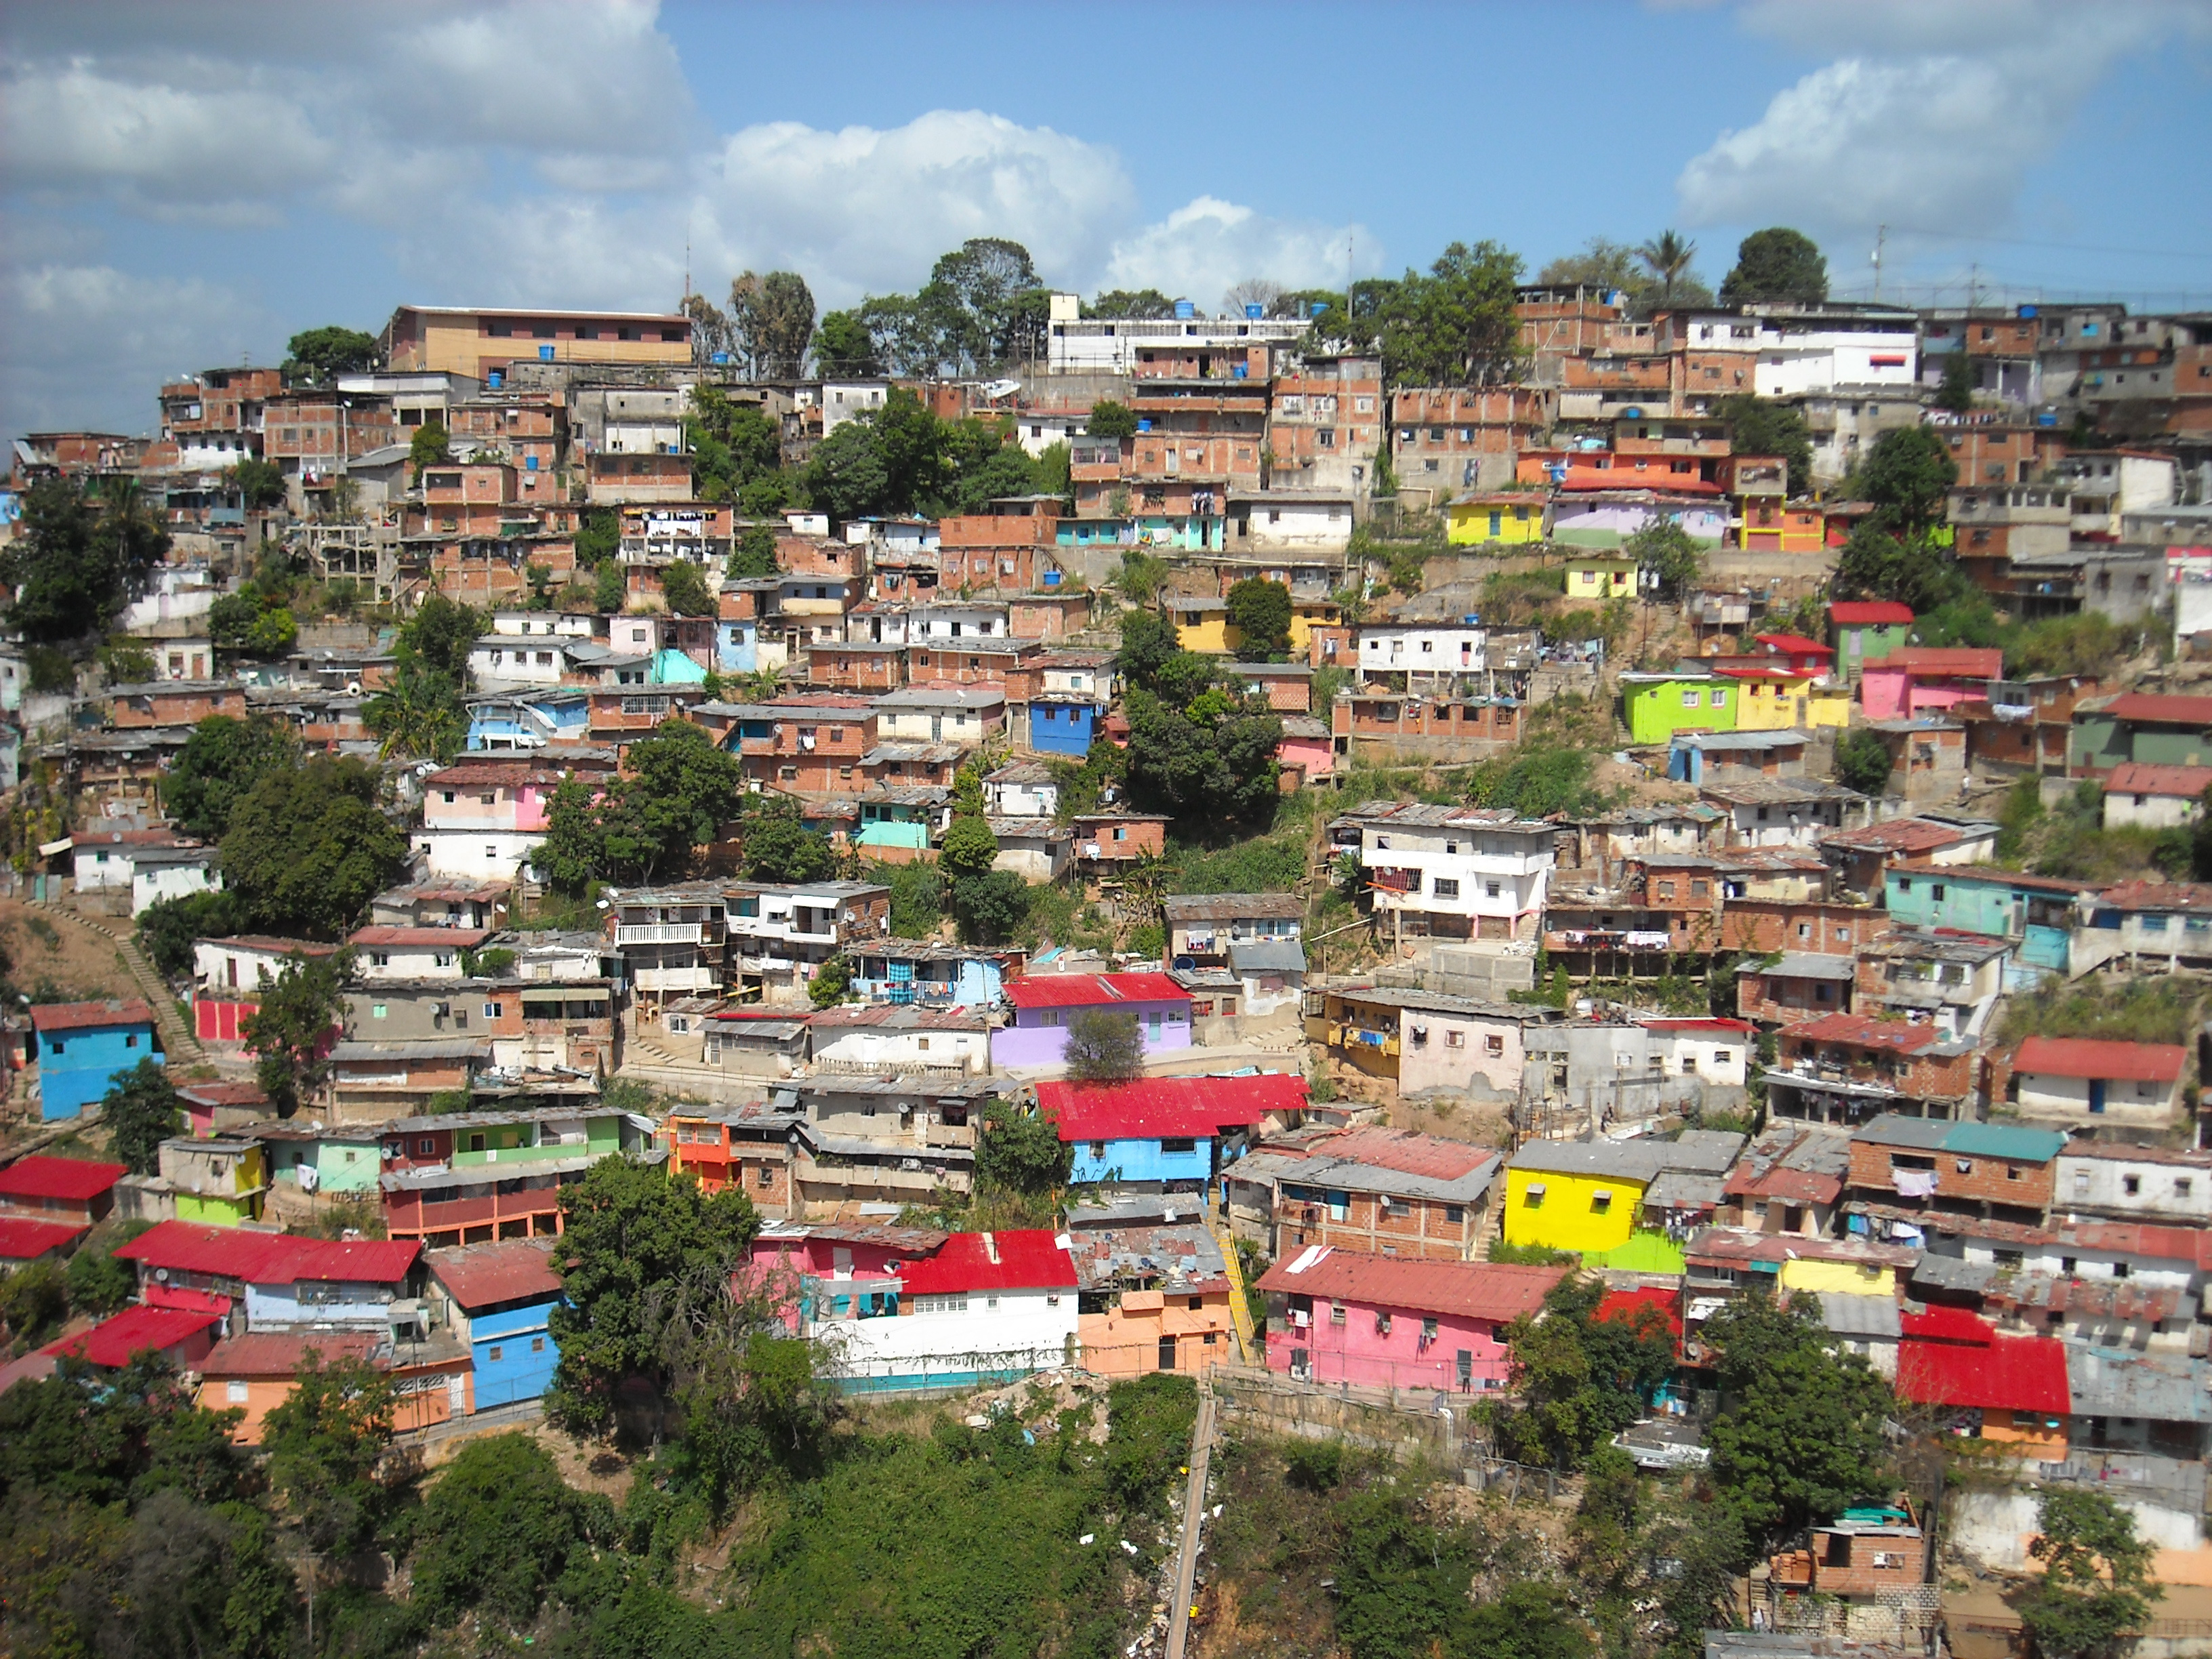 The poor living in those houses in Caracas are suffering greatly as a result of intentional government policies. Photo courtesy of Adobe Stock.